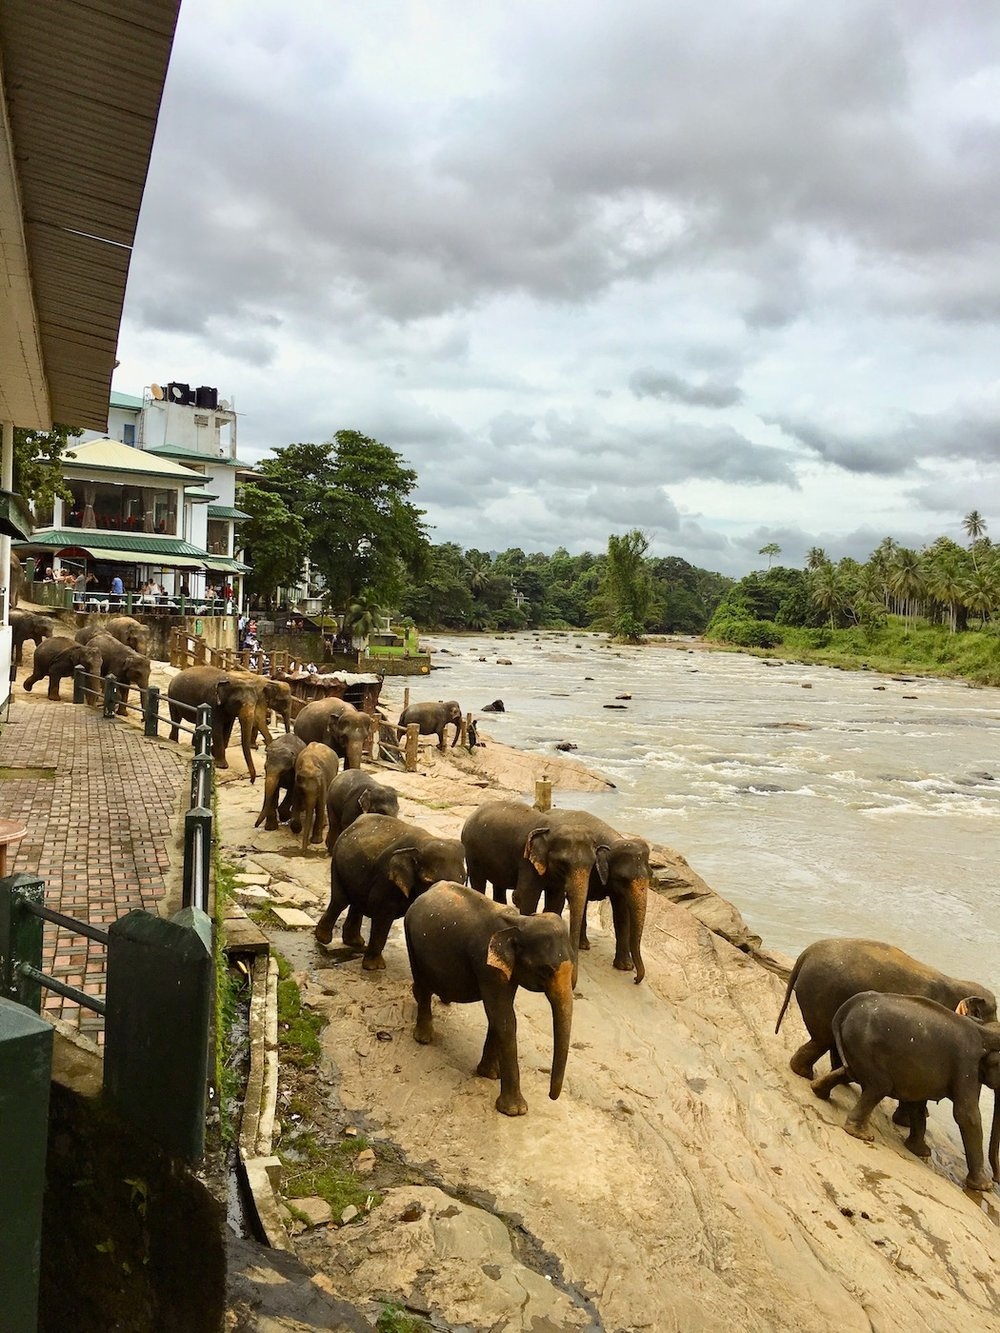 Arrival of elephants at Maha Oya River. Photo: Patti Neves